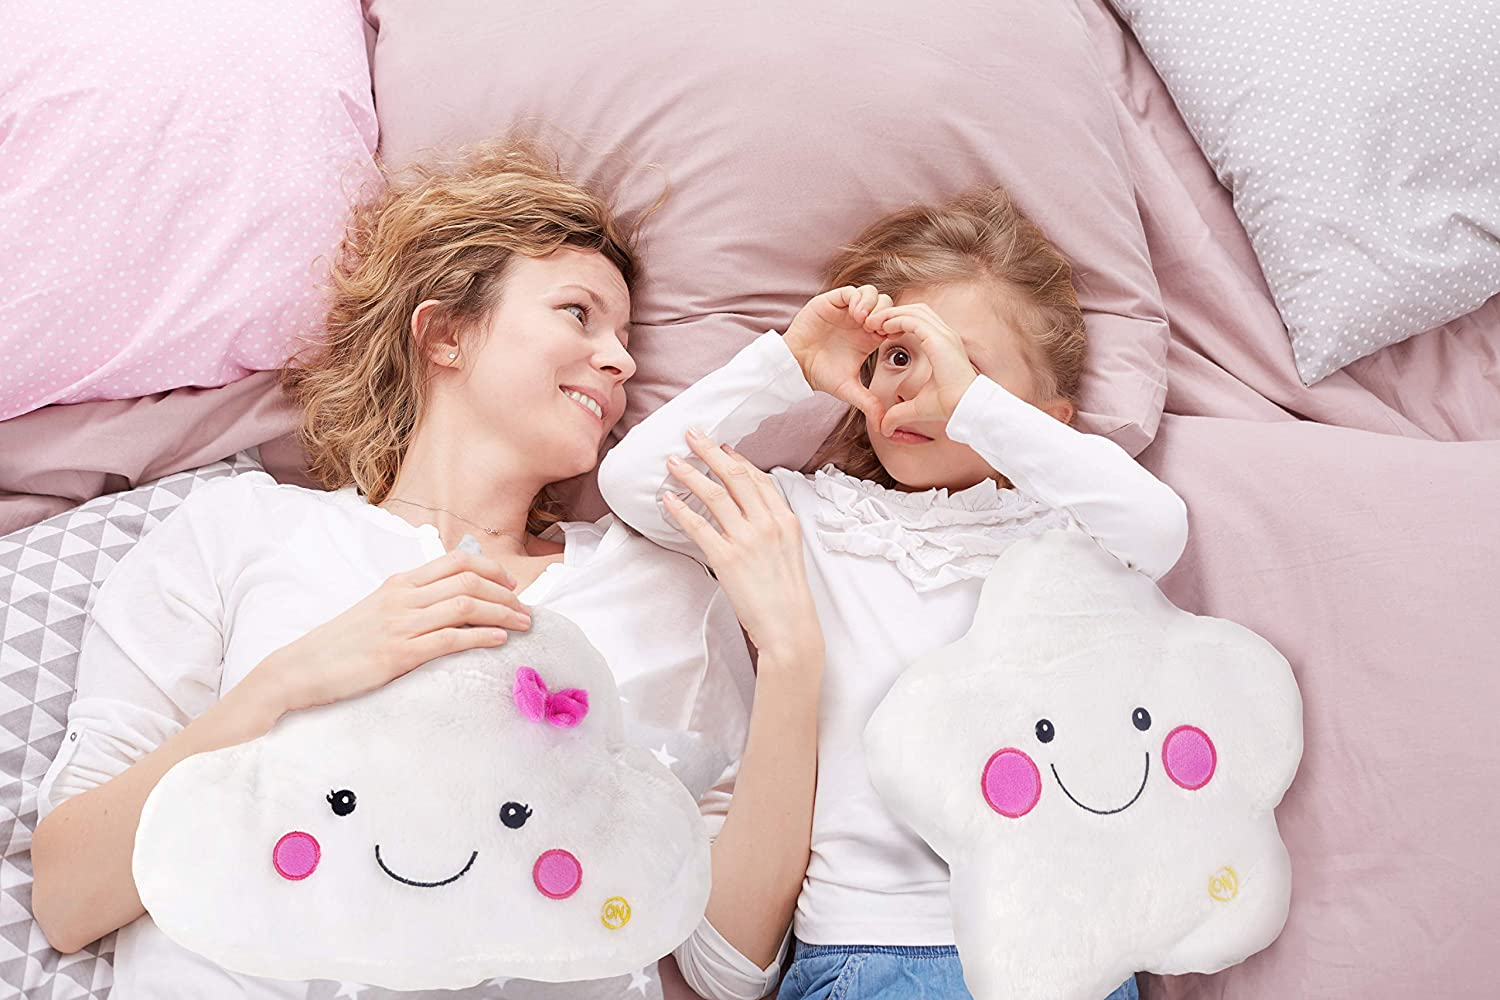 12 Star Light Up Pals Pillow Plush W//Night Light/_/_Gift Box Included Linzy Toys 60098